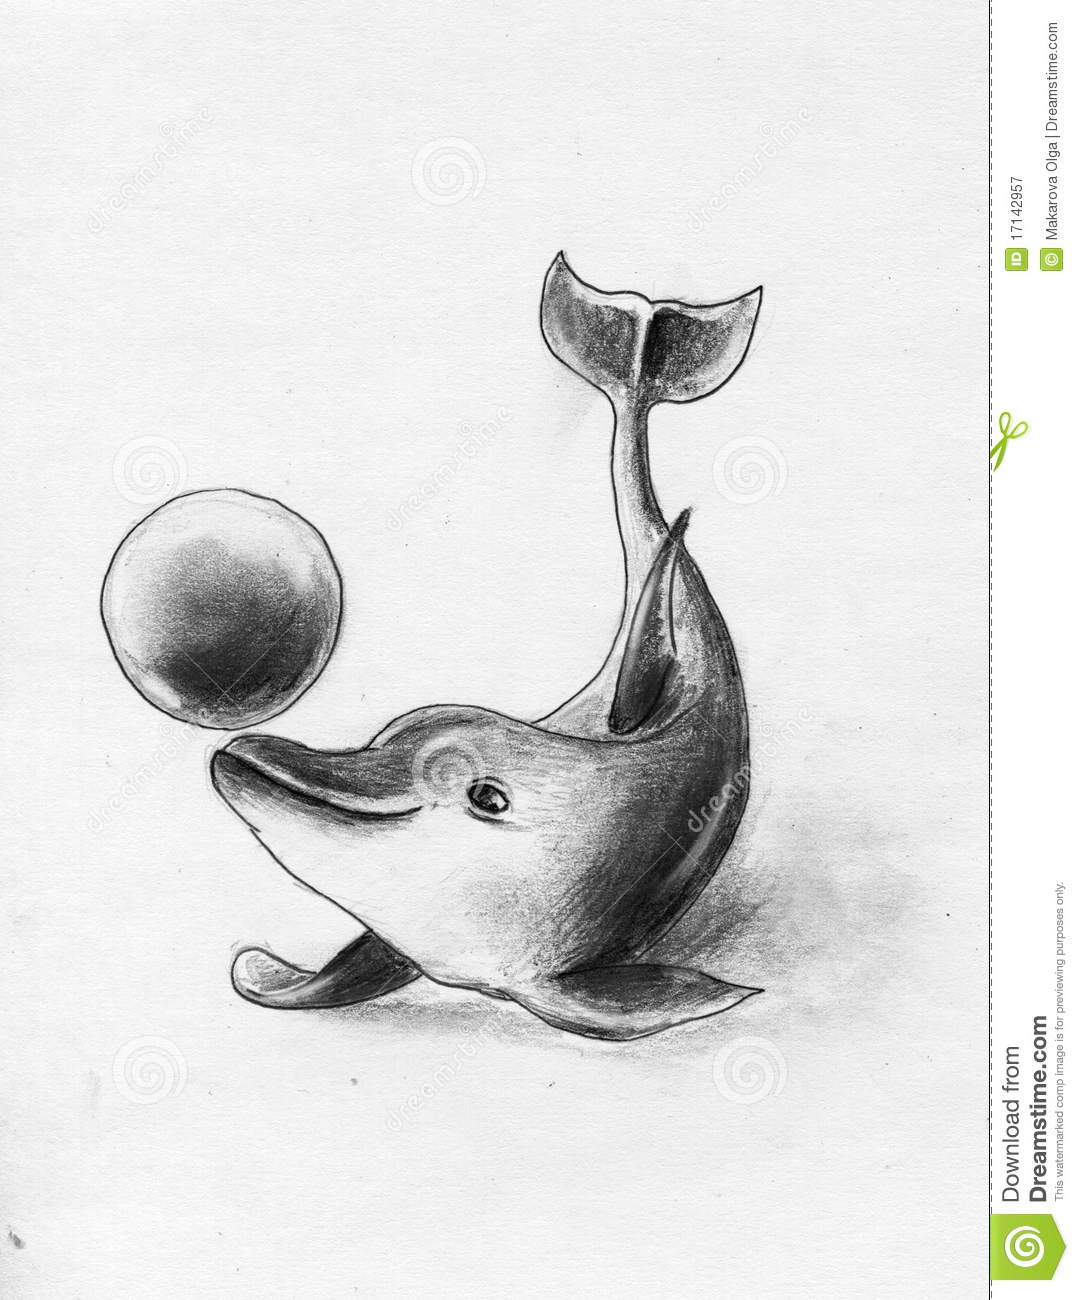 Cheery dolphin making tricks with ball pencil drawing sketch